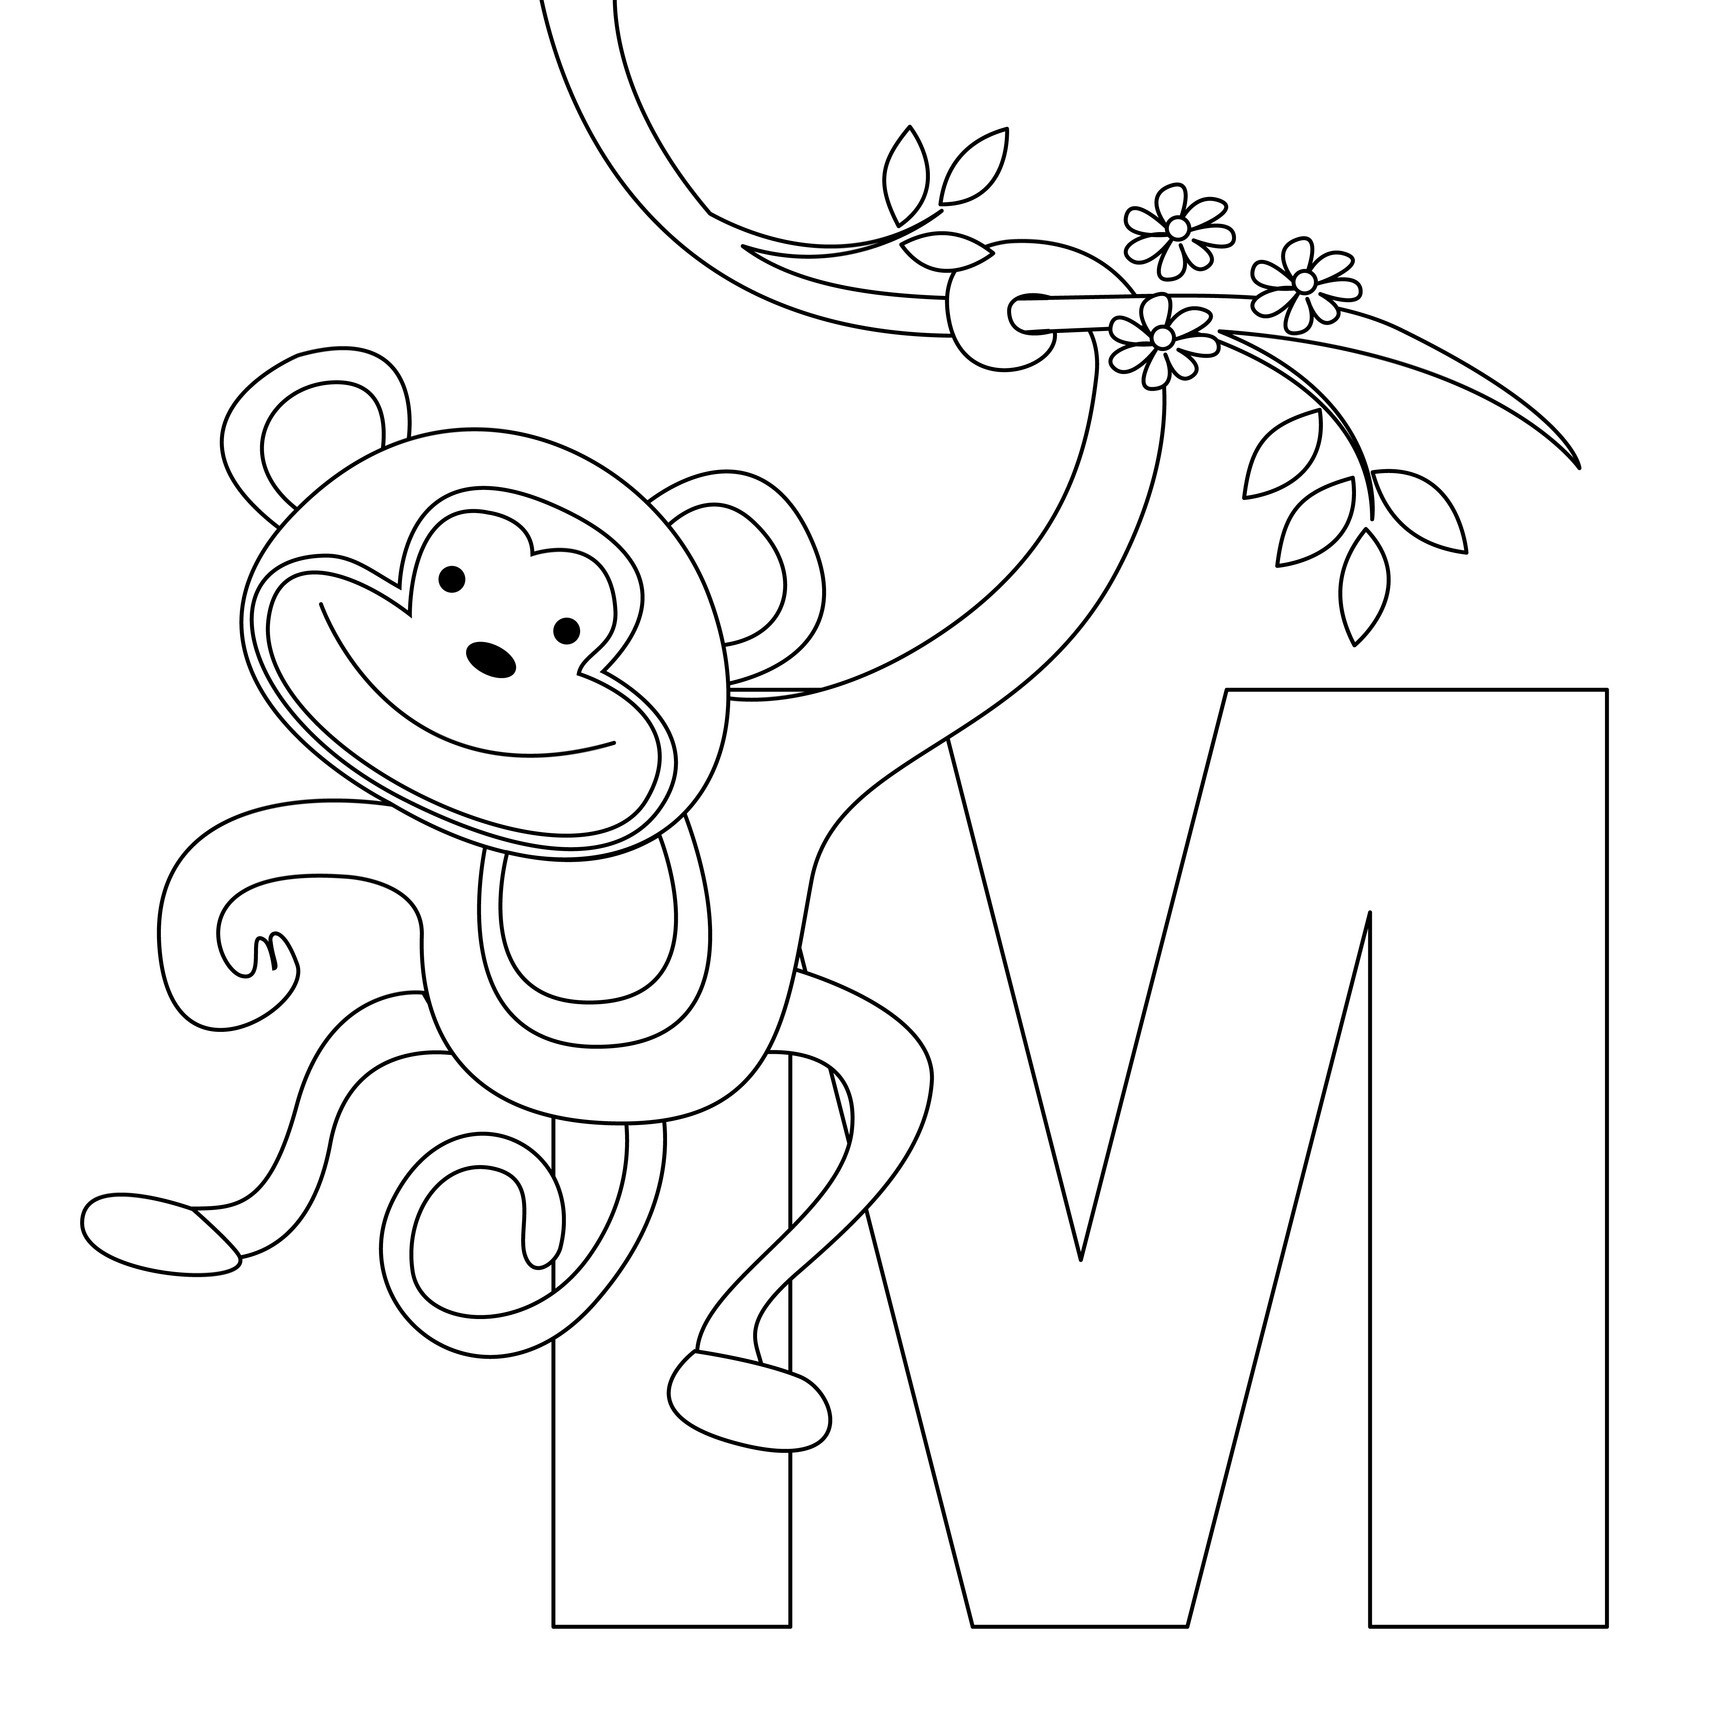 Monkey Coloring Pages Free Printable  Printable 5i - Free For Children